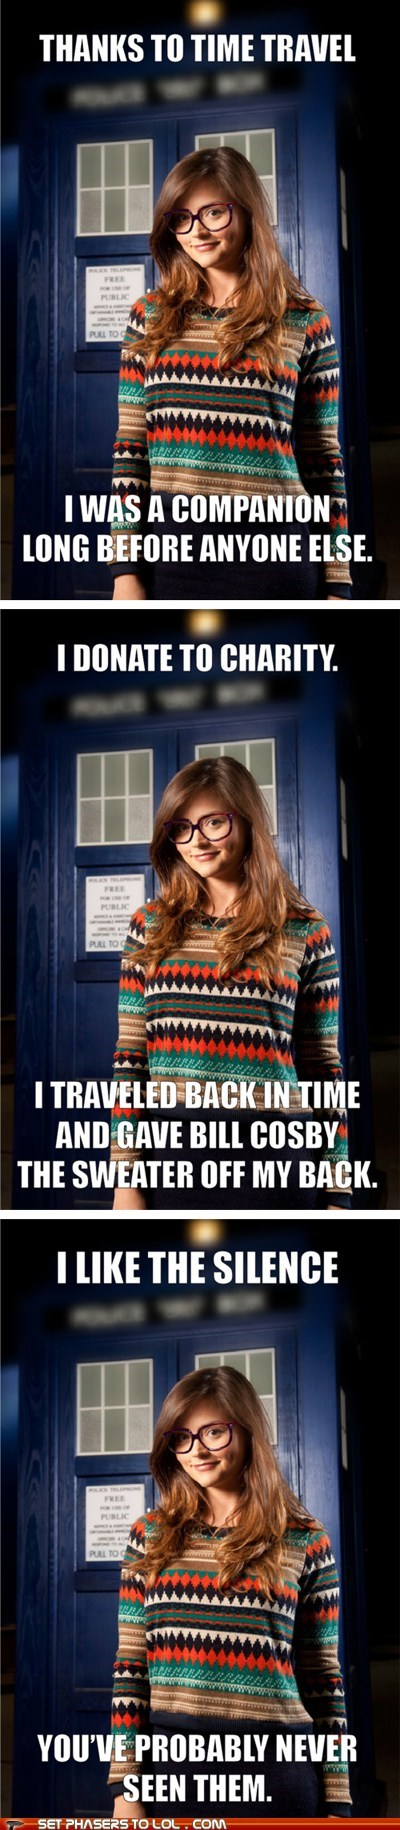 bill cosby companion doctor who hipster jenna-louise coleman Memes silence sweater - 6061469952